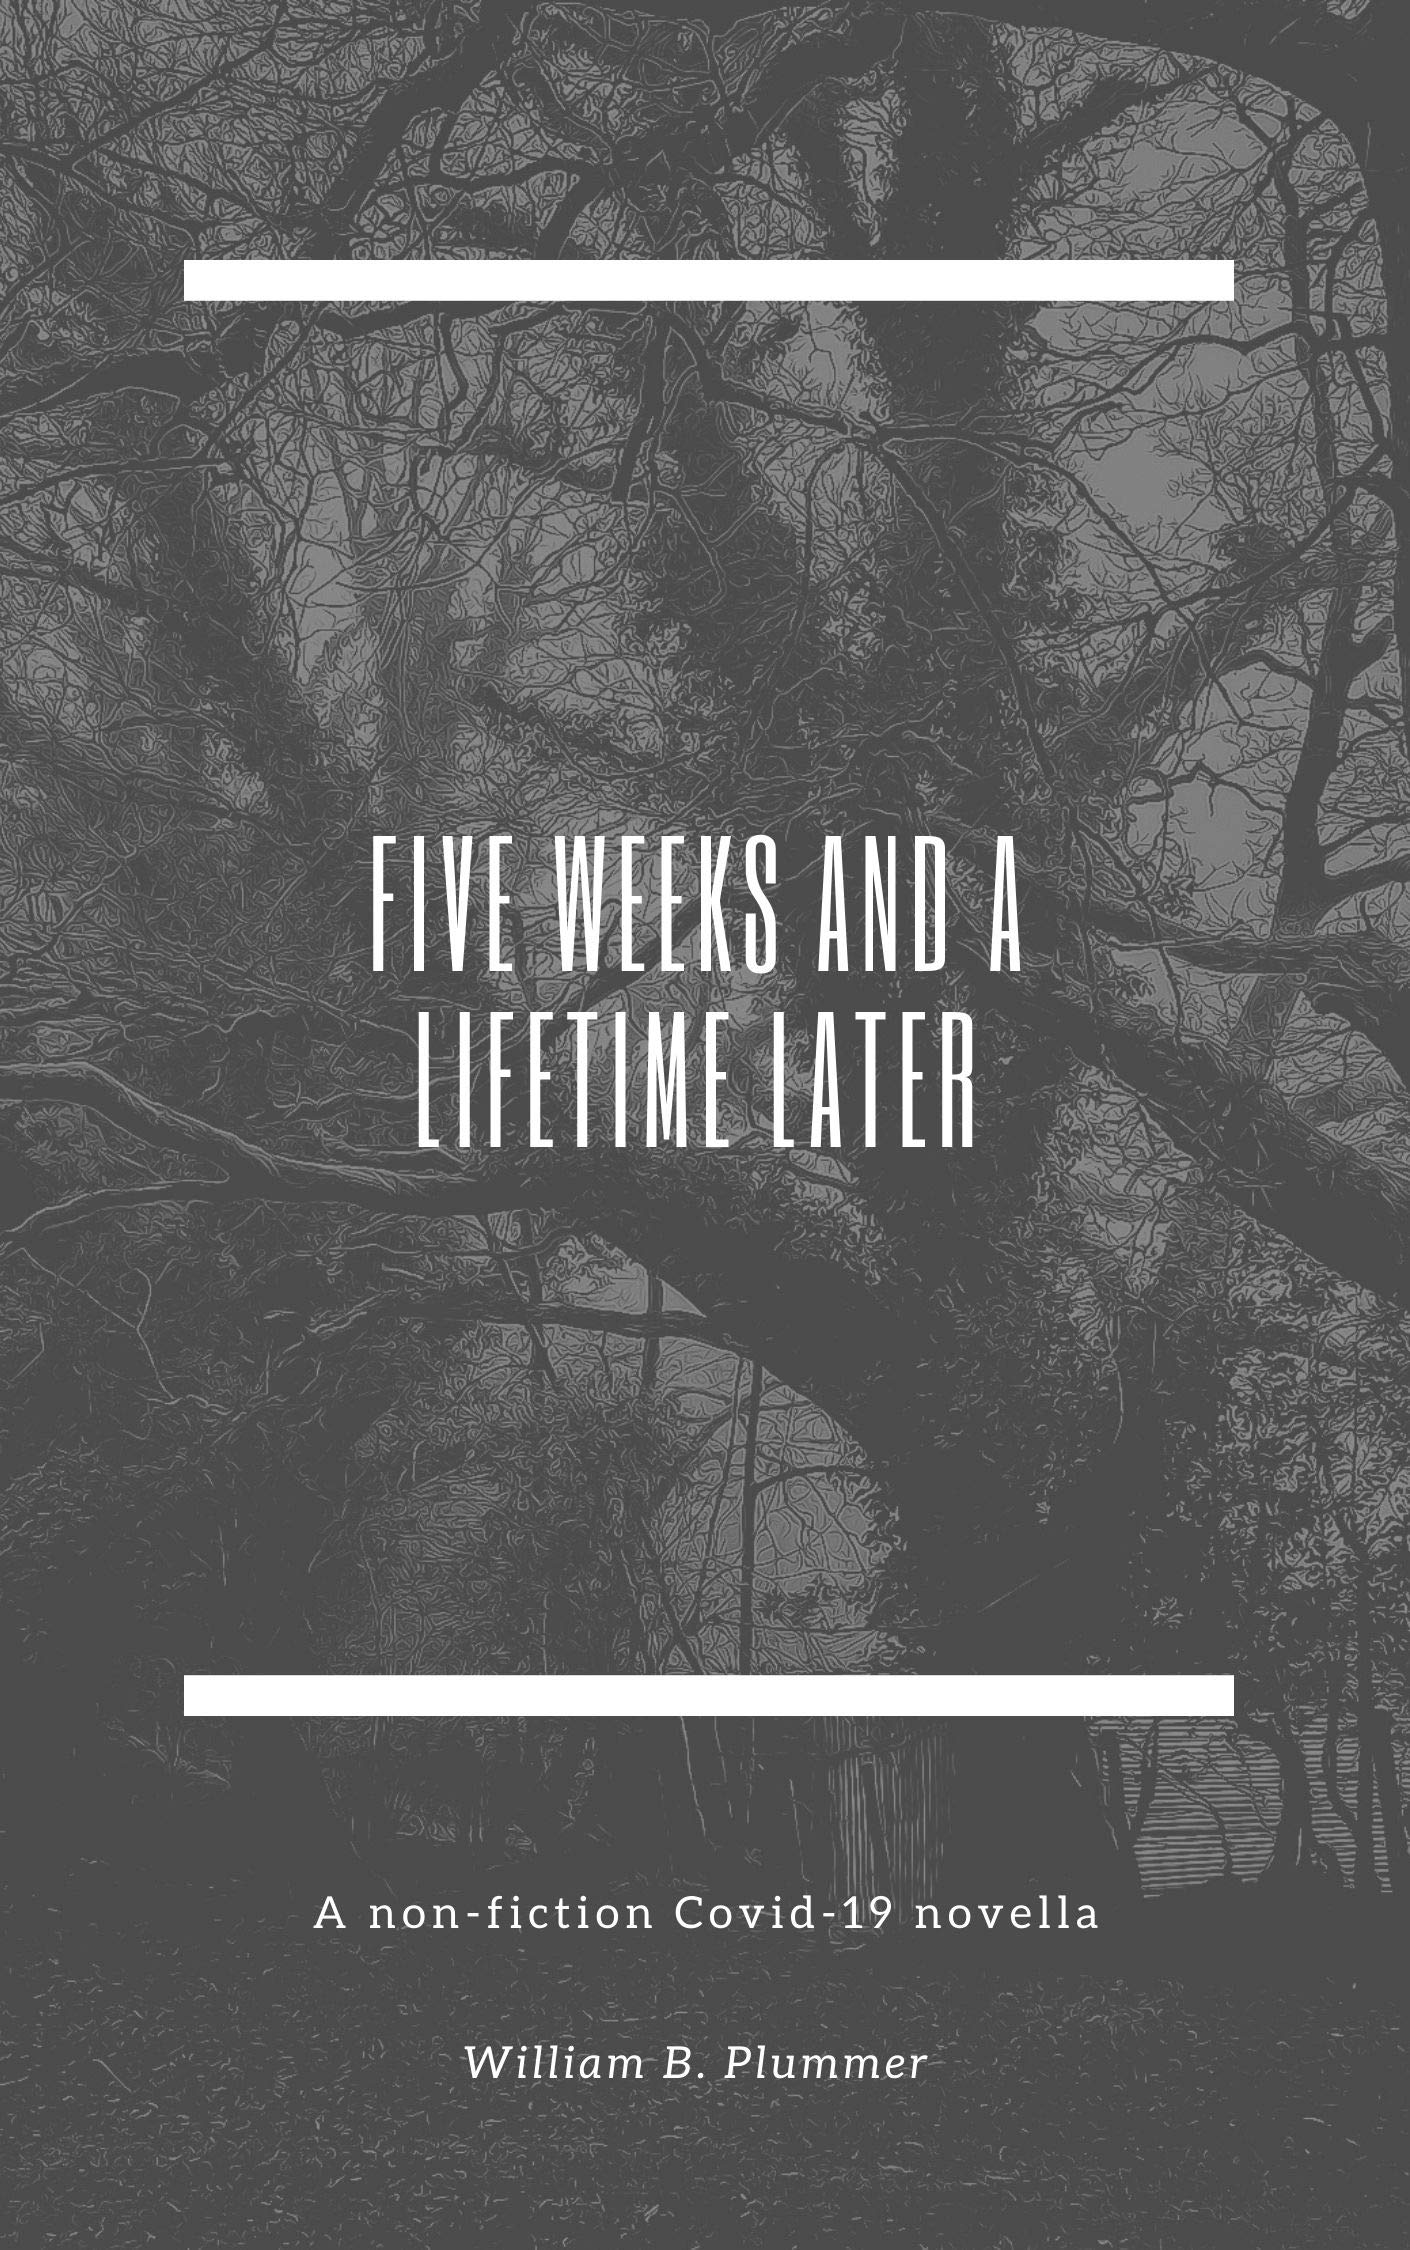 Five Weeks and A Lifetime Later: A non-fiction Covid-19 novella